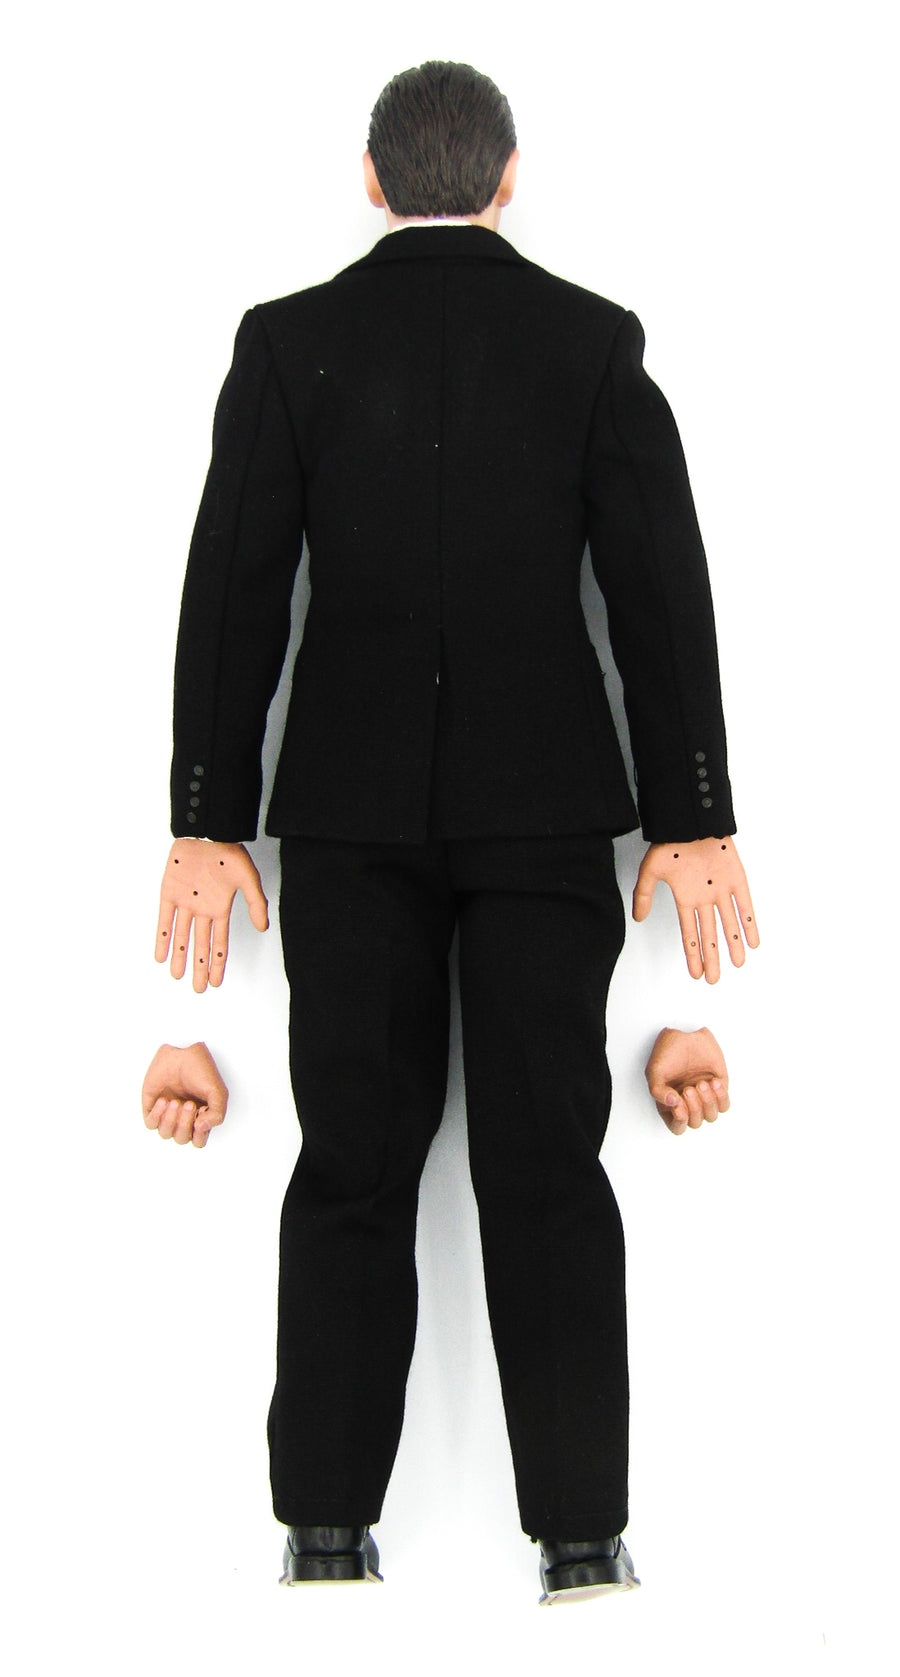 Chicago Gangster - Michael - Male Base Body w/Head & Suit Set